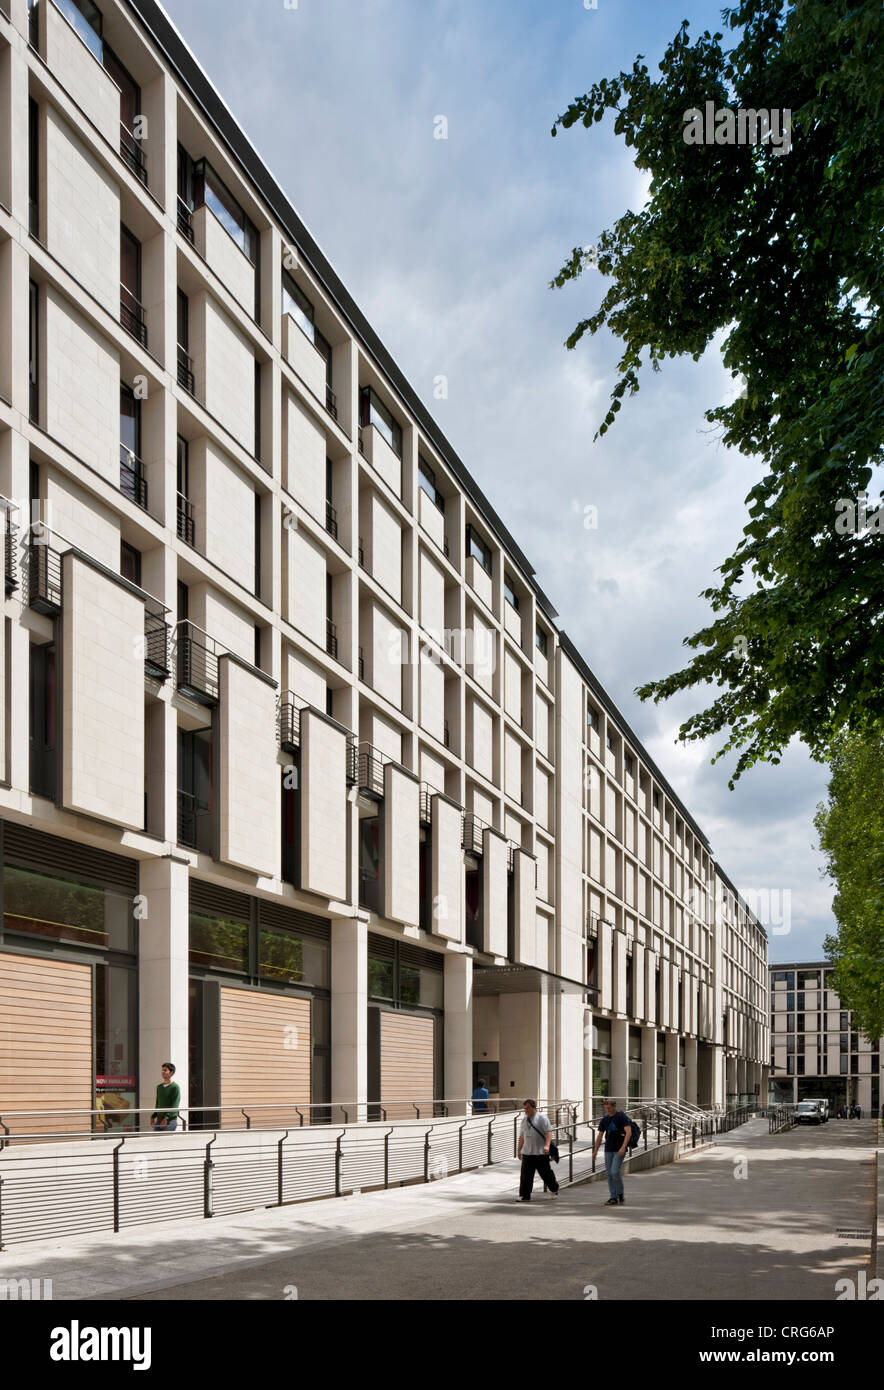 Wilkinson Hall at Prince's Gardens: Imperial College - winner of a 2011 Civic Trust Award - Stock Image